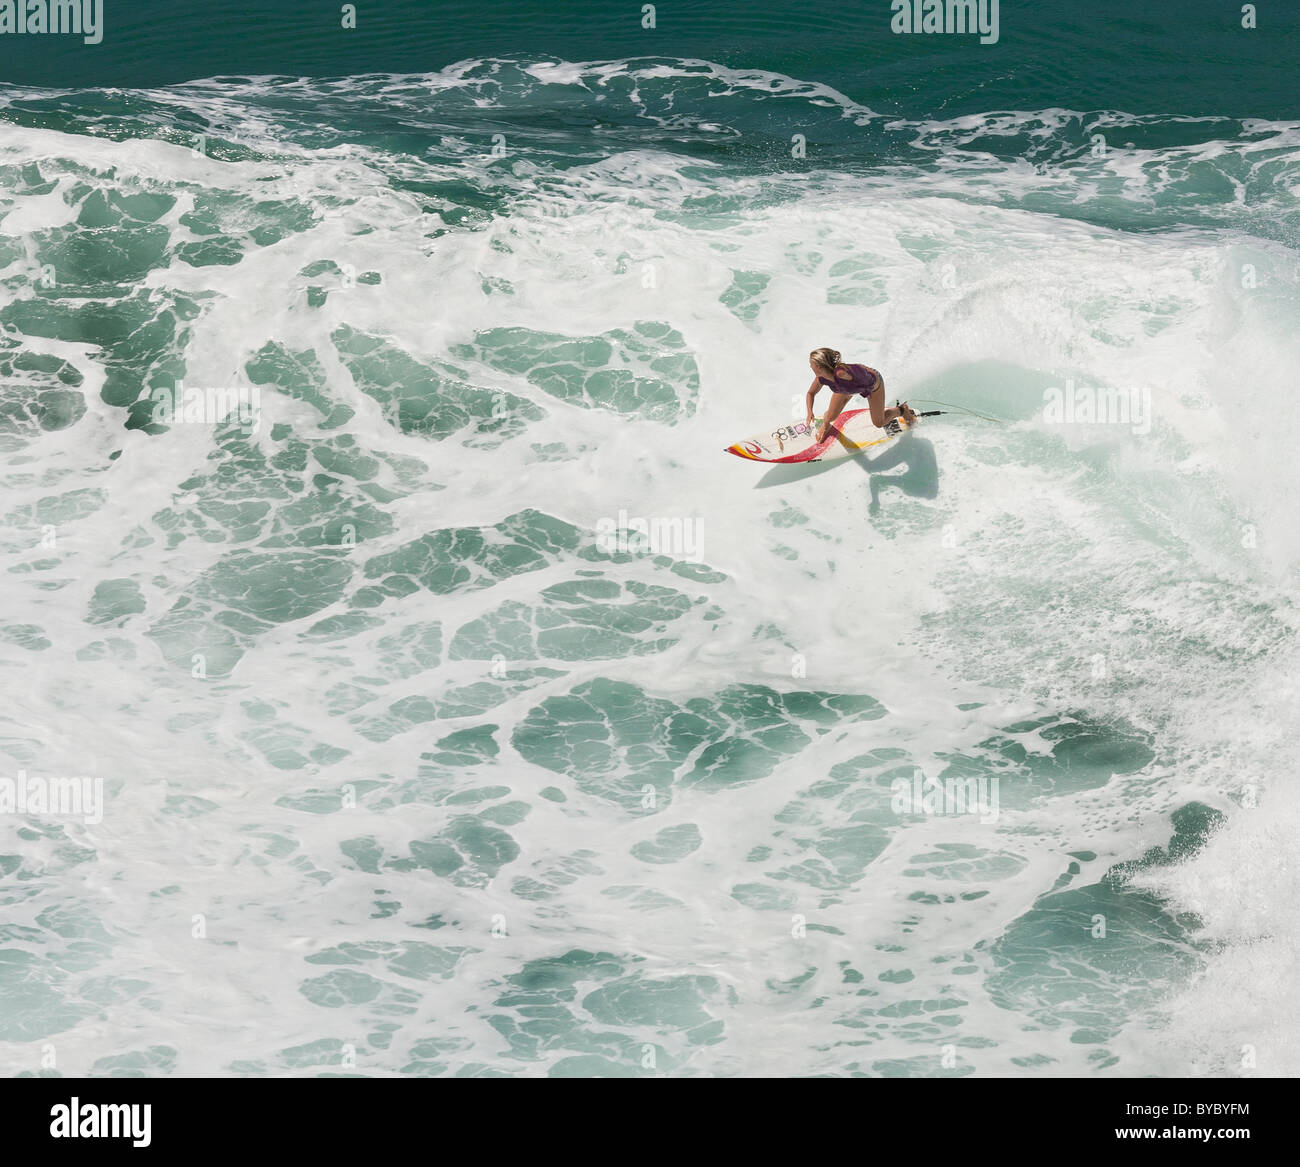 Soul Surfer Bethany Hamilton cuts through a breaking wave. - Stock Image